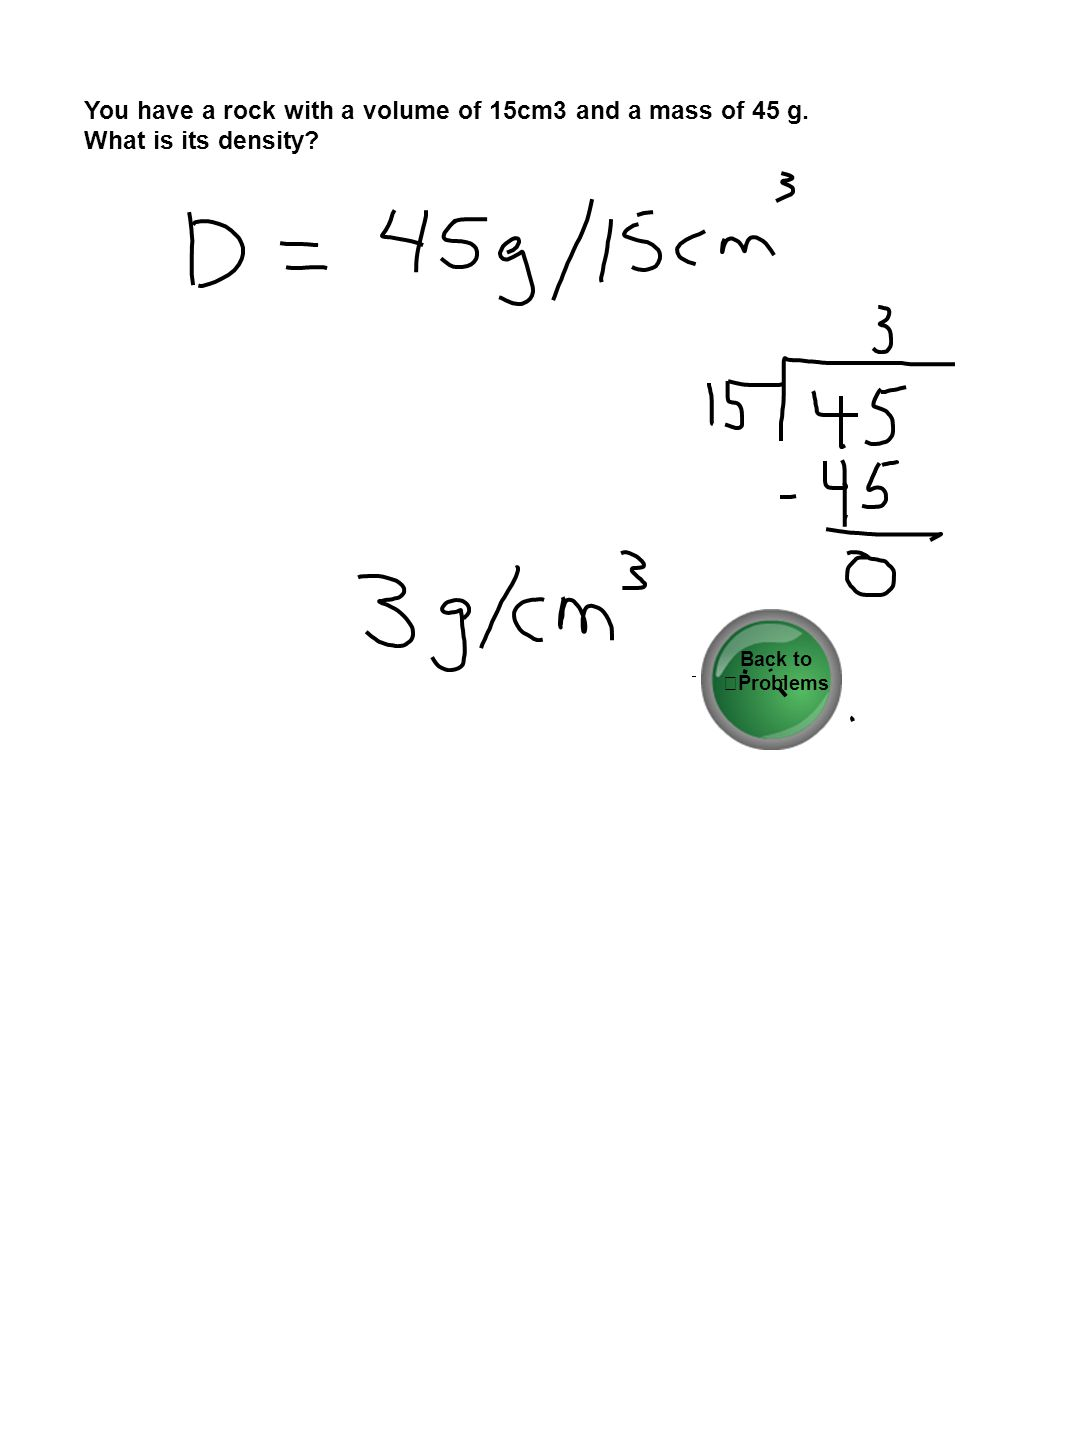 You have a rock with a volume of 15cm3 and a mass of 45 g